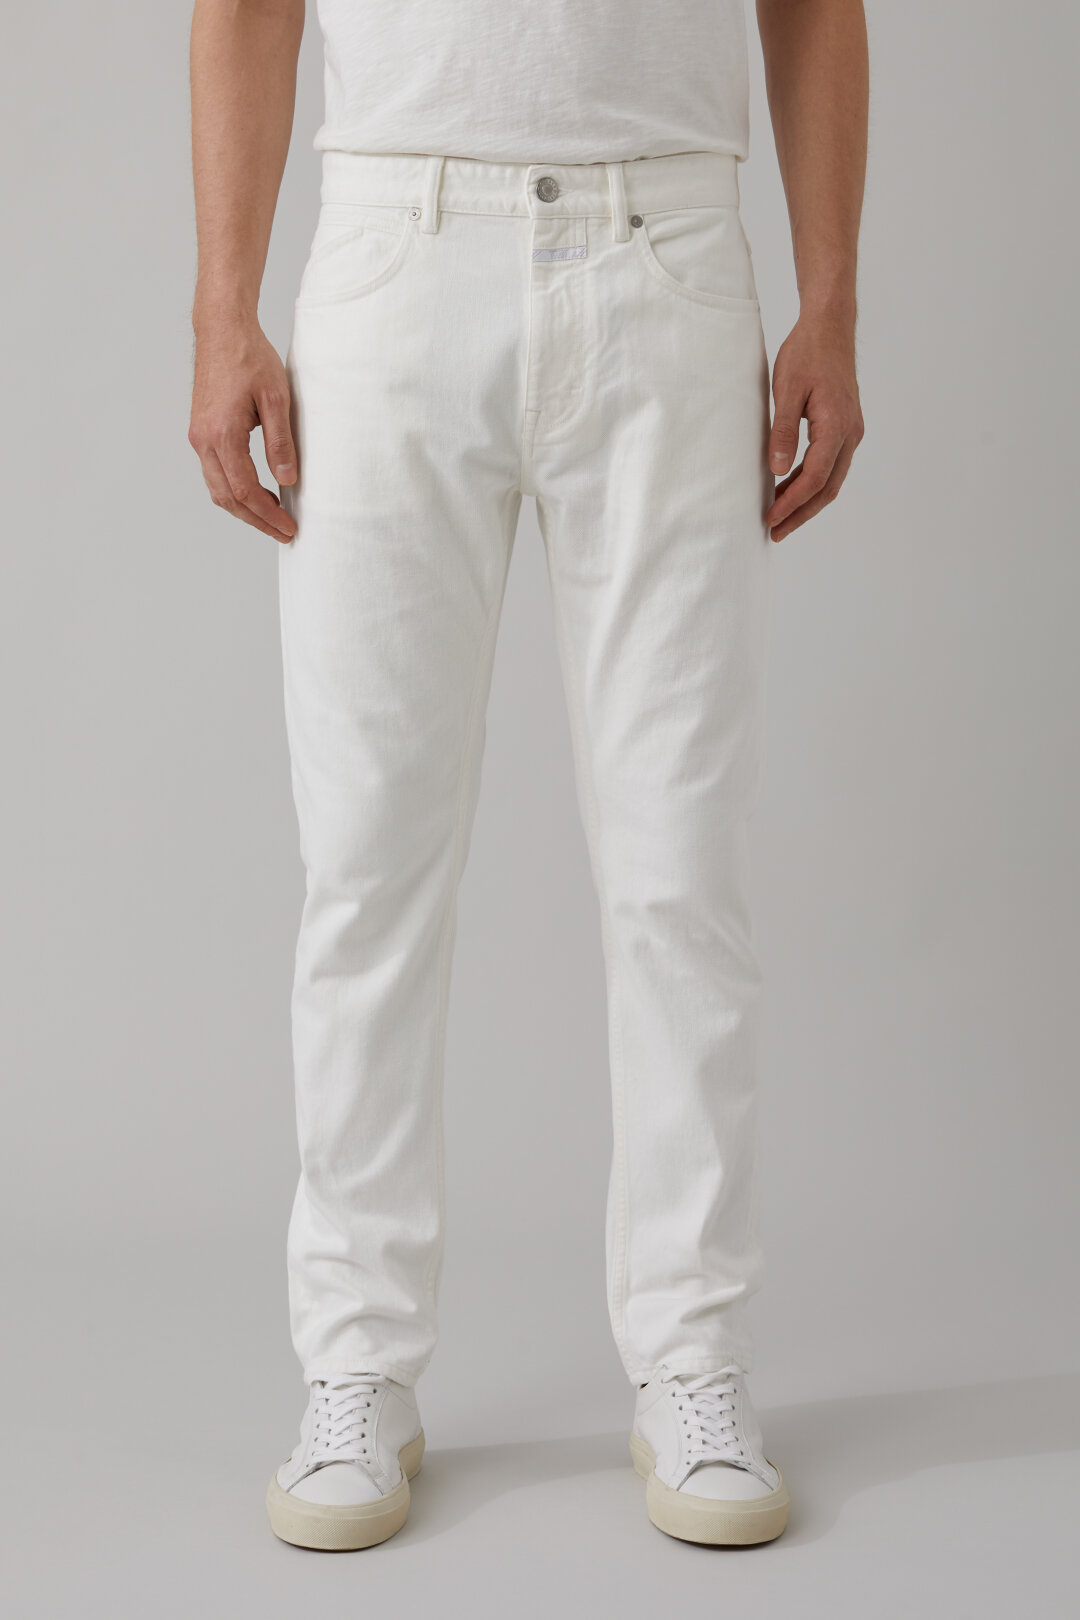 Cooper Tapered White Denim